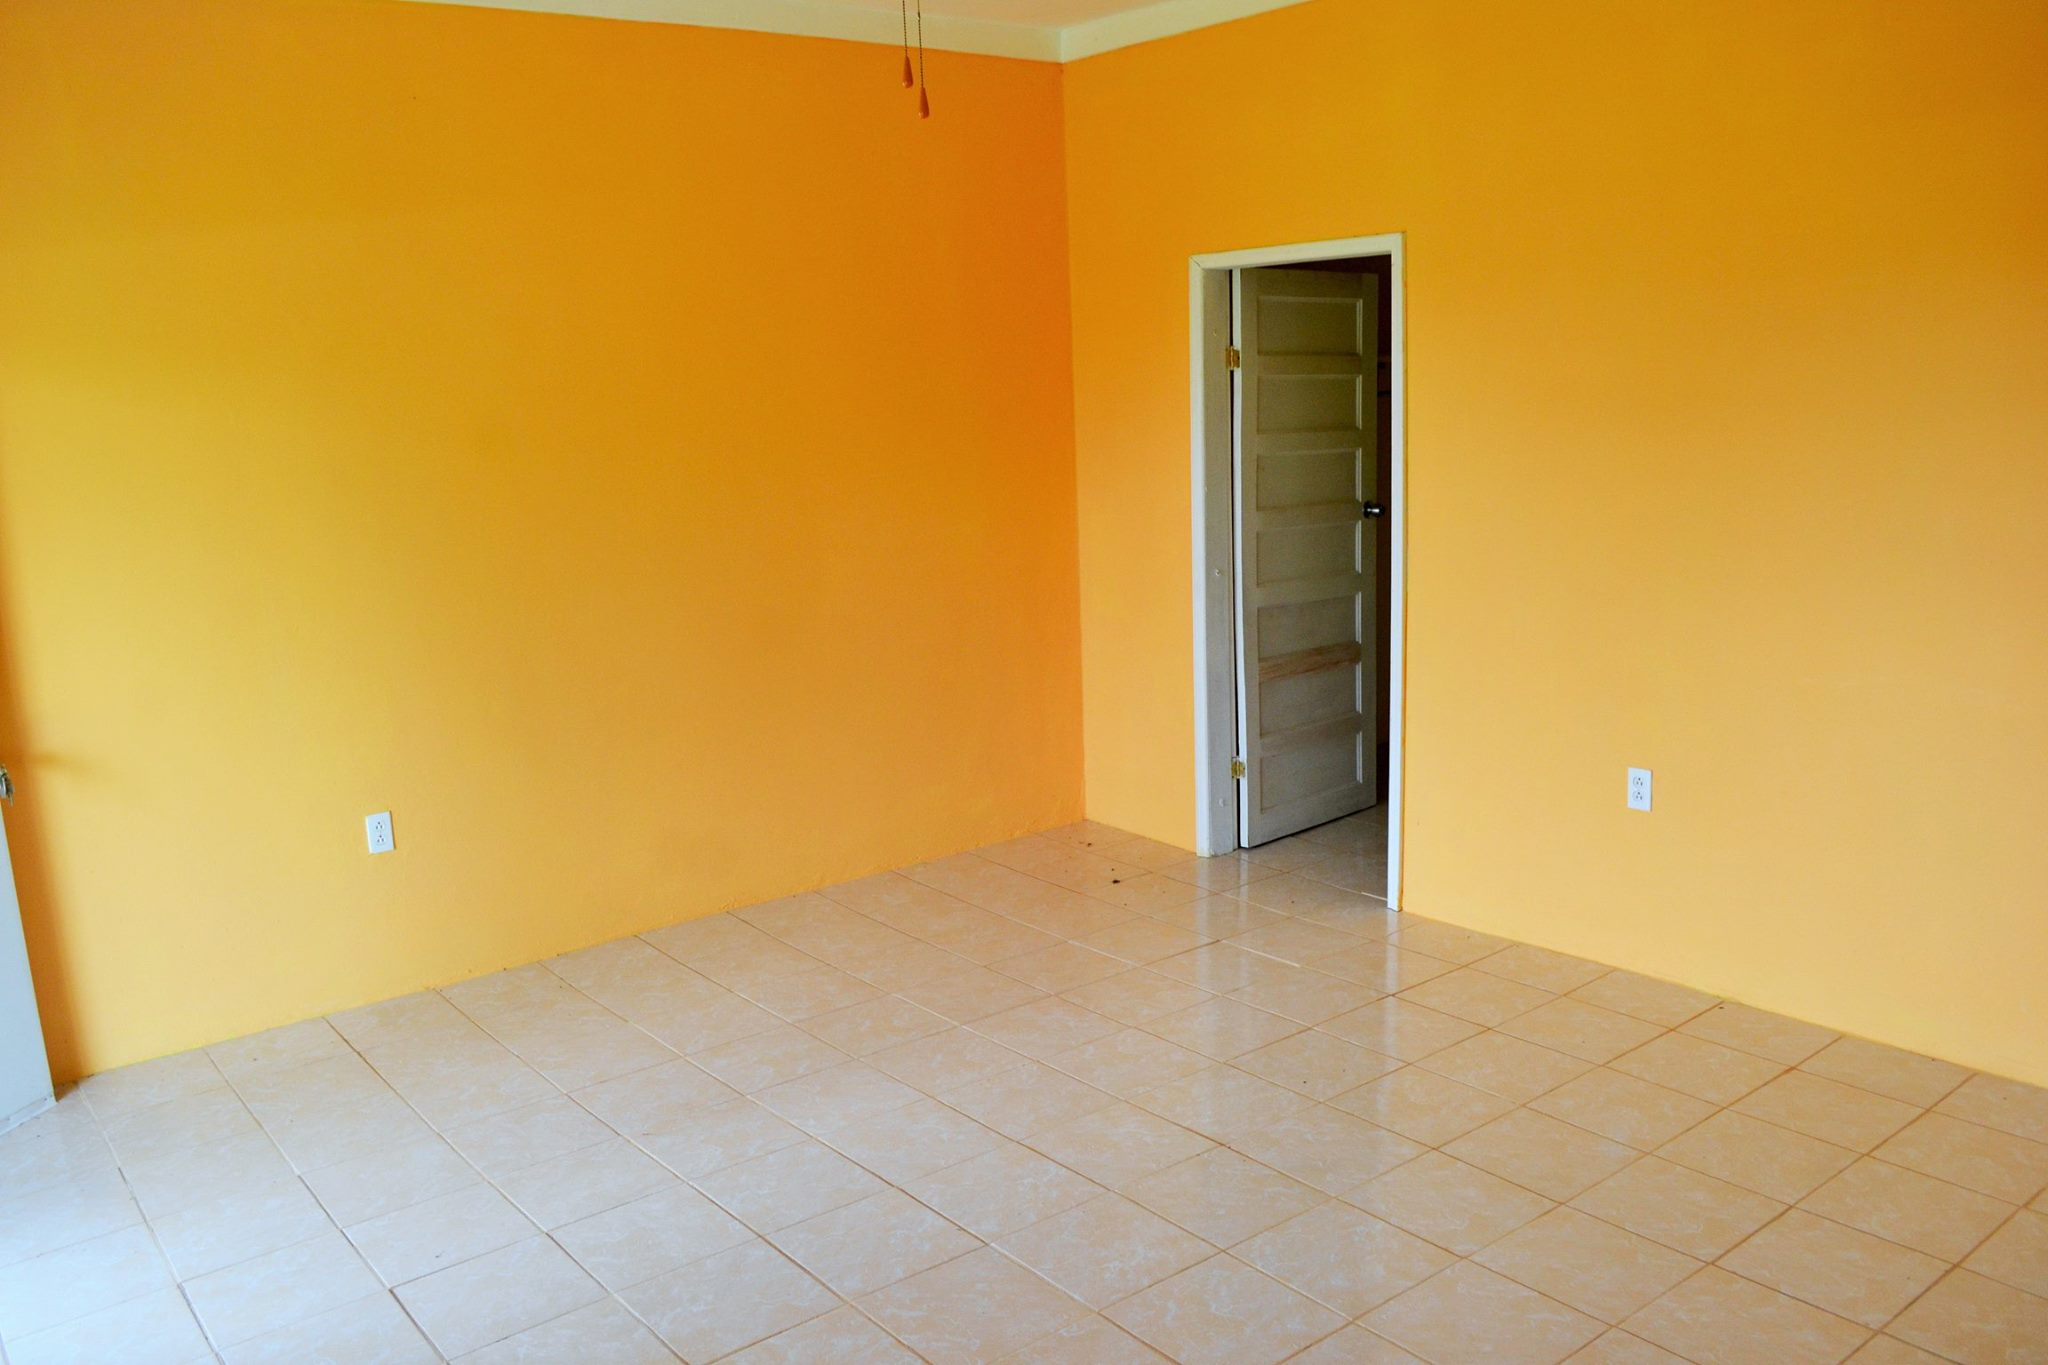 One Bedroom unfurnished apartment